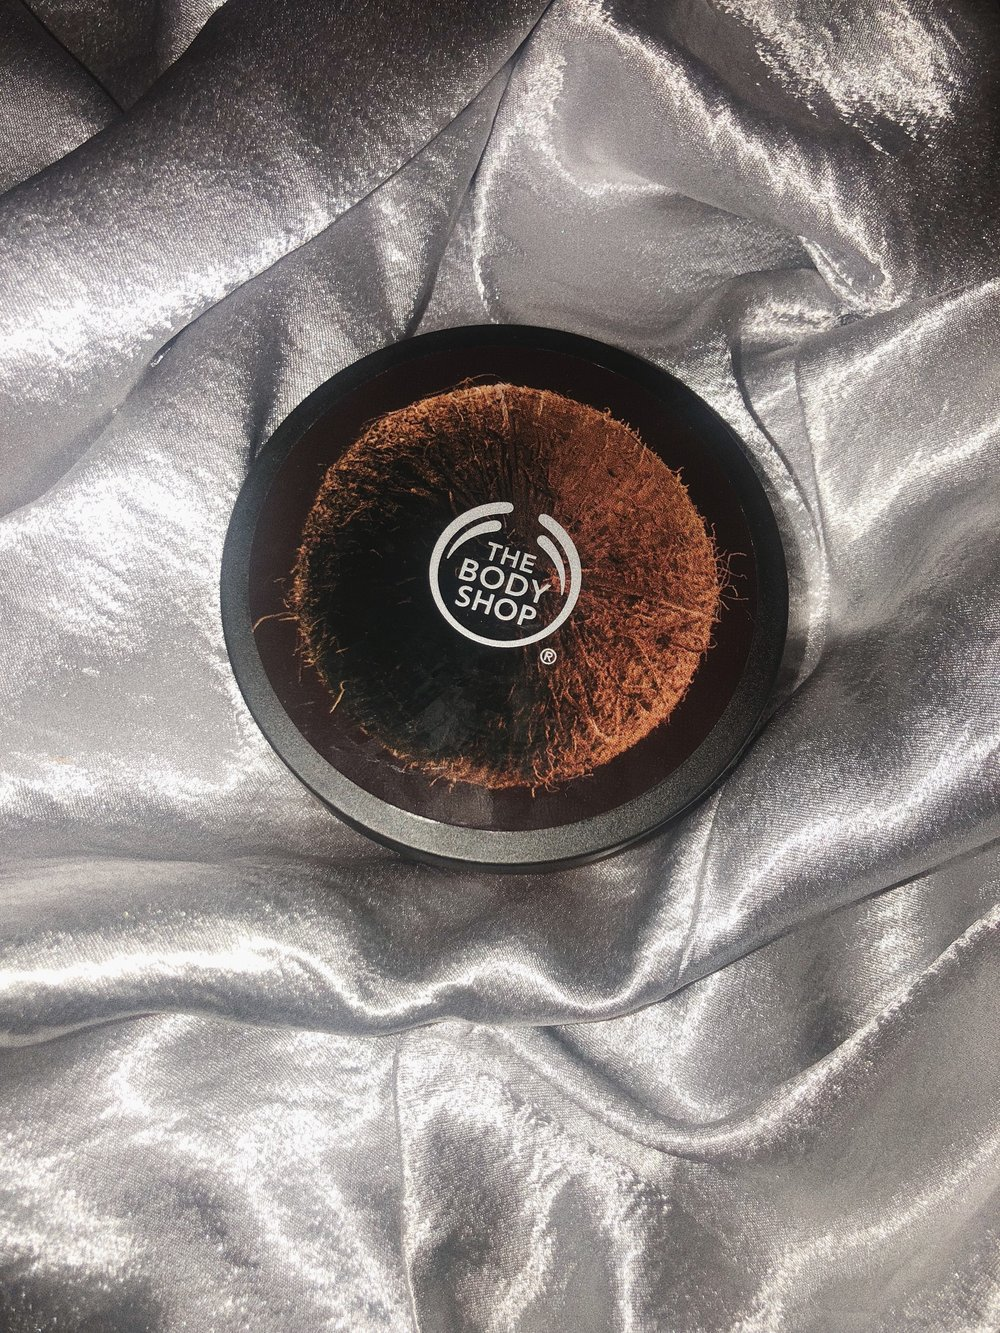 WHAT CAN I SAY? THE   BODY SHOP COCONUT BODY BUTTER   IS A STAPLE FOR ME. I LOVE HOW HYDRATED MY SKIN FEELS AFTER APPLYING THIS AND I LOVE THAT YOU DON'T HAVE TO RUB IT IN, IT LITERALLY JUST MELTS. AND IT HAS YOU SMELLING LIKE A DELICIOUS COCONUT. - J